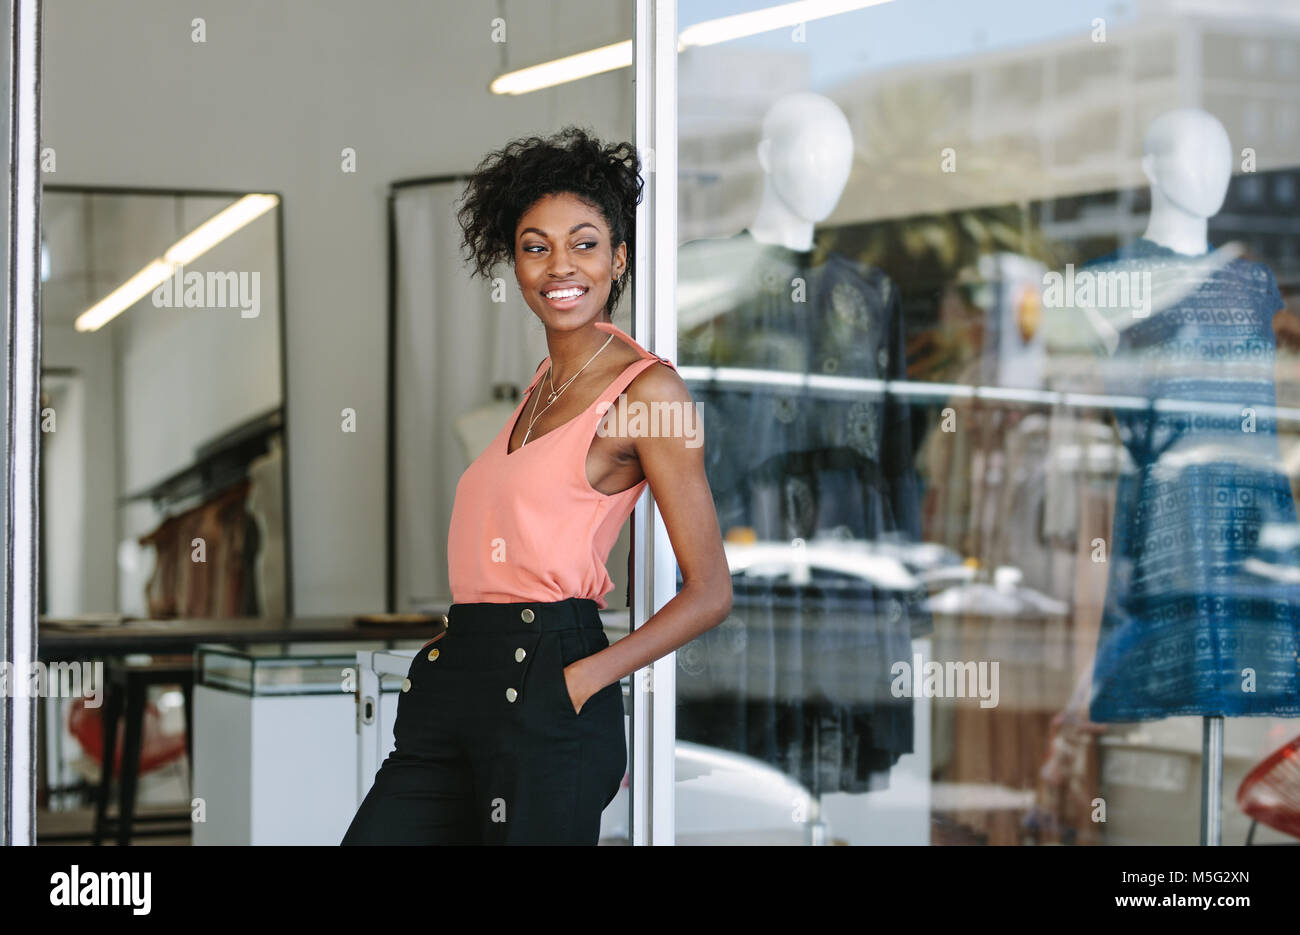 Smiling dress designer in her cloth shop with designer clothes on display. Woman entrepreneur standing at the entrance - Stock Image